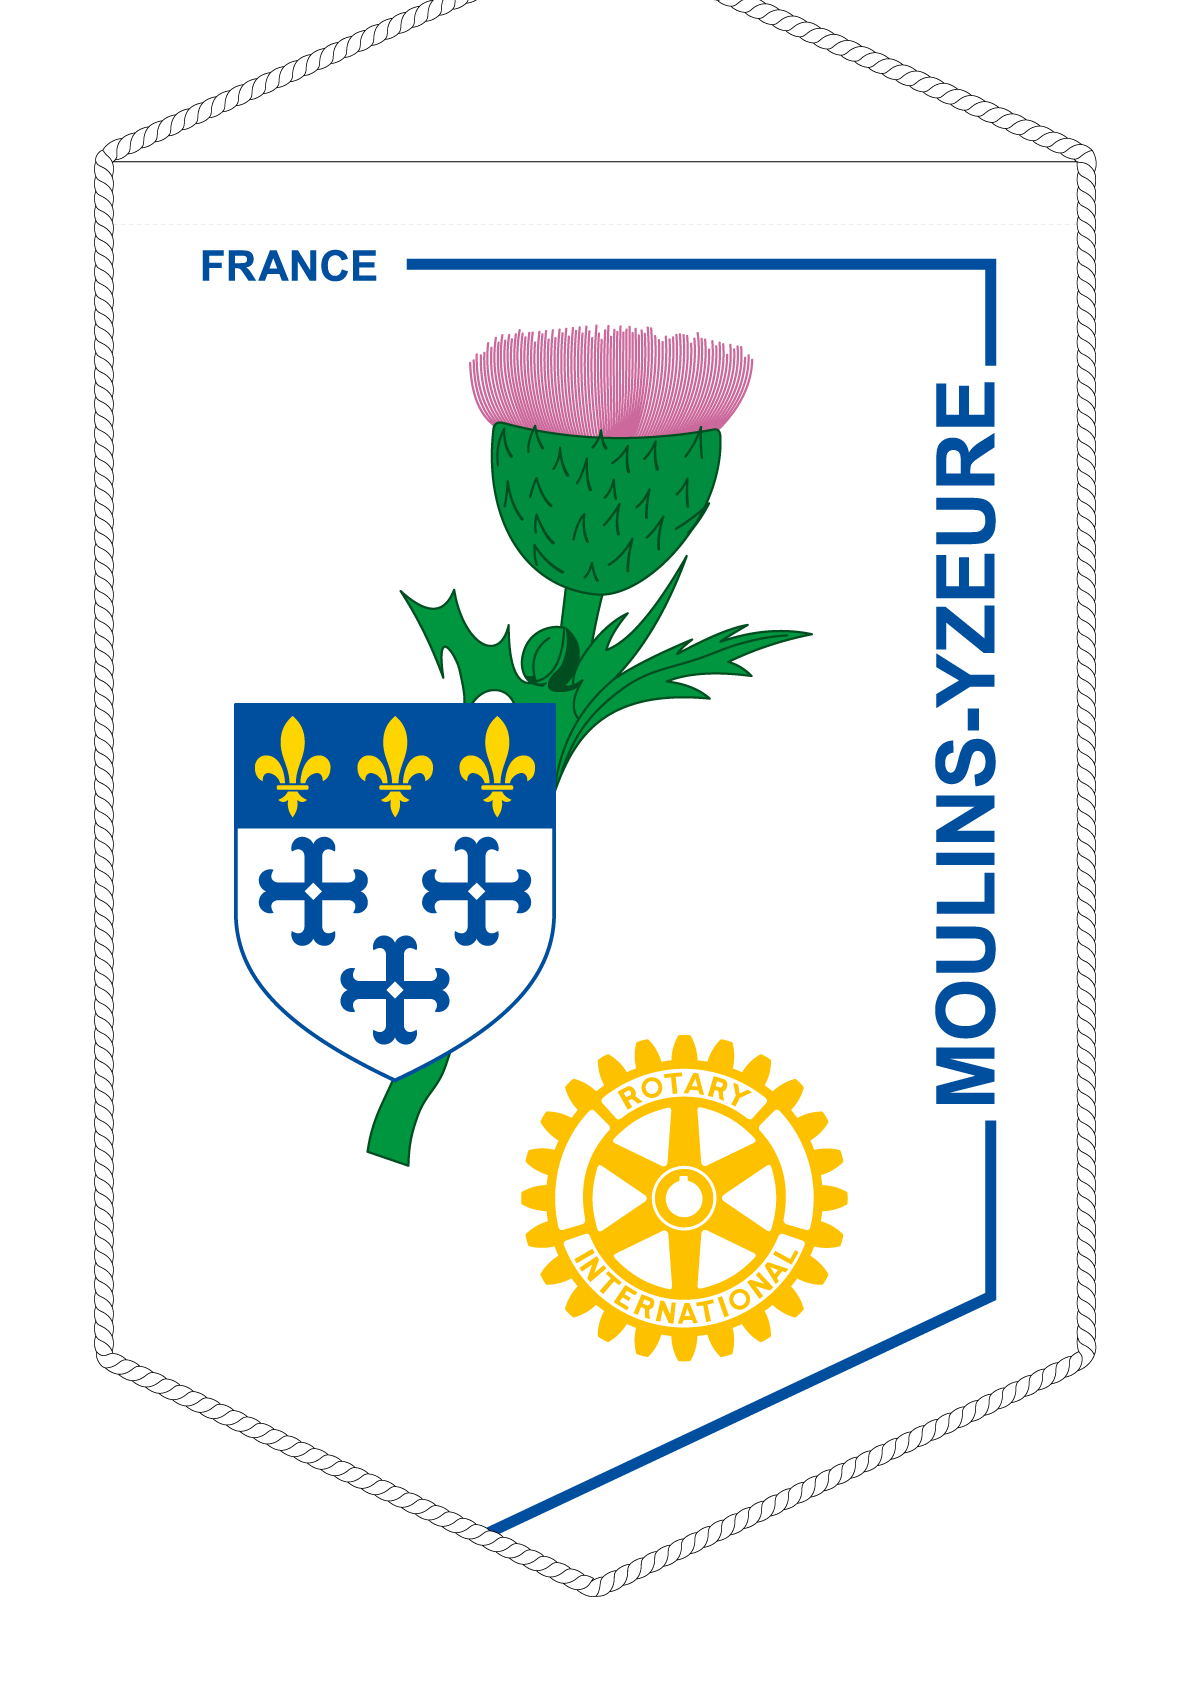 FANION ROTARY CLUB MOULINS YZEURE